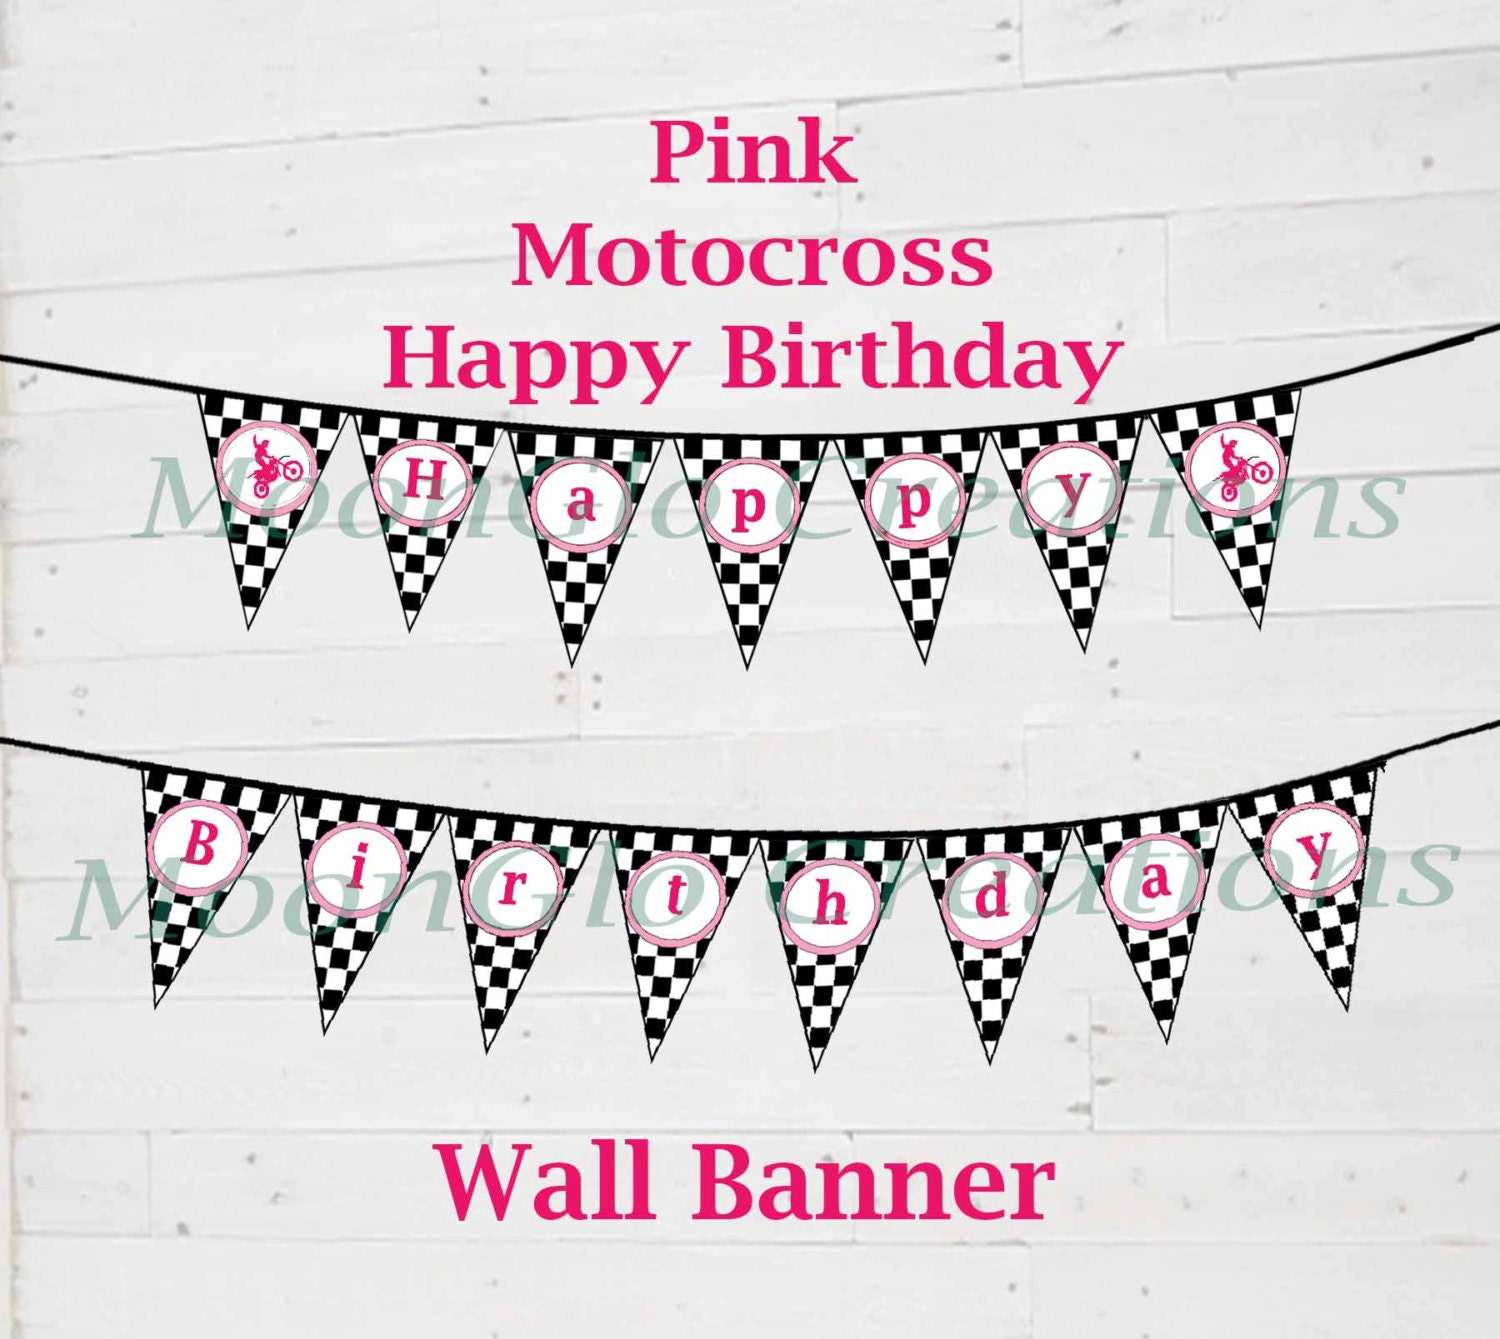 Motocross Theme 'Happy Birthday' Banner. Birthday